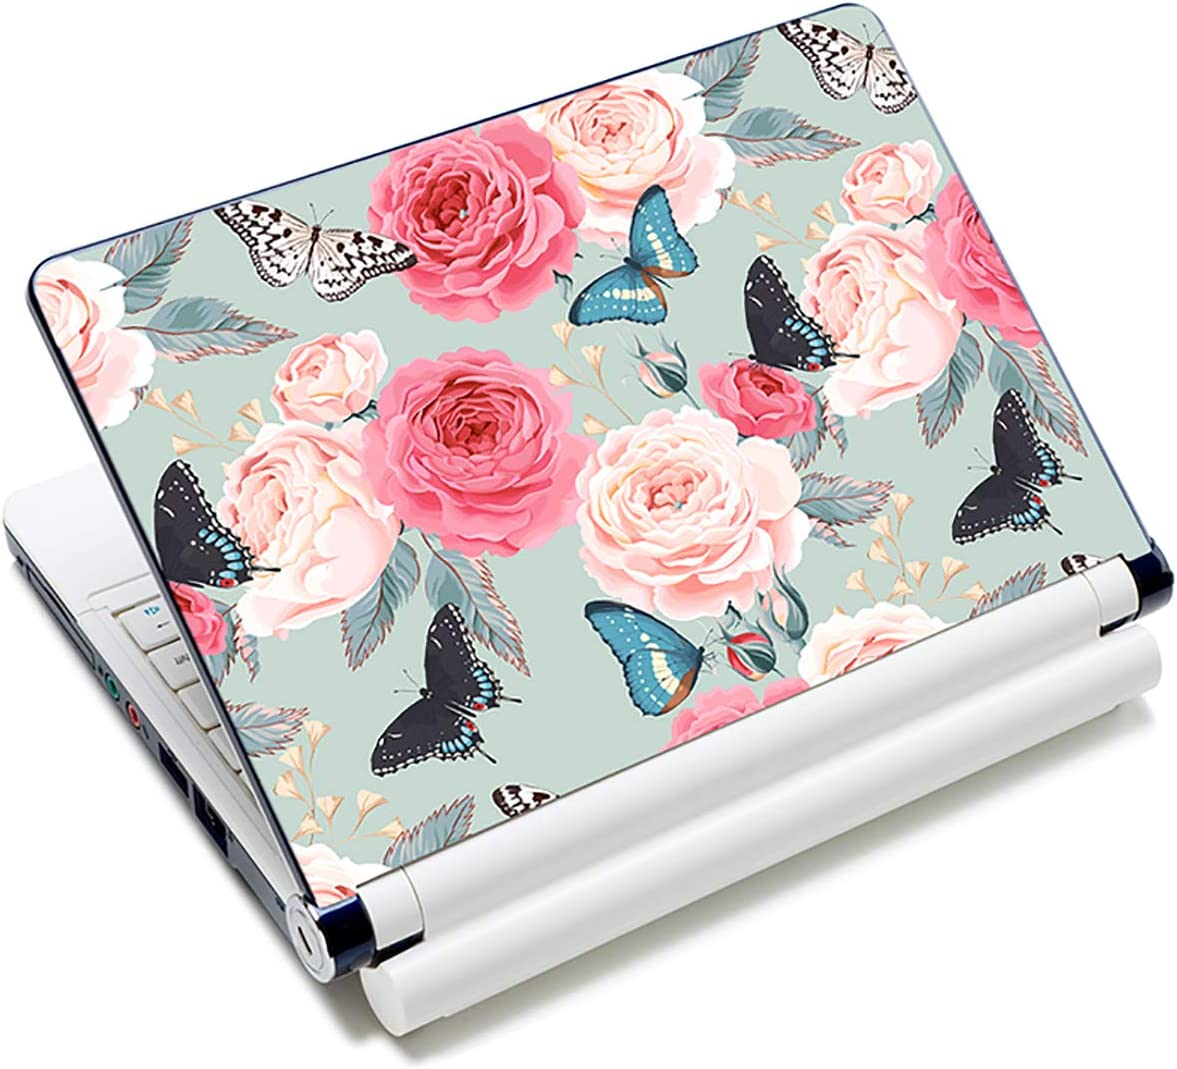 Laptop Stickers Decal,12 13 14 15 15.6 inches Netbook Laptop Skin Sticker Reusable Protector Cover Case for Toshiba Hp Samsung Dell Apple Acer Leonovo Sony Asus Laptop Notebook (Nice Peony Flower)